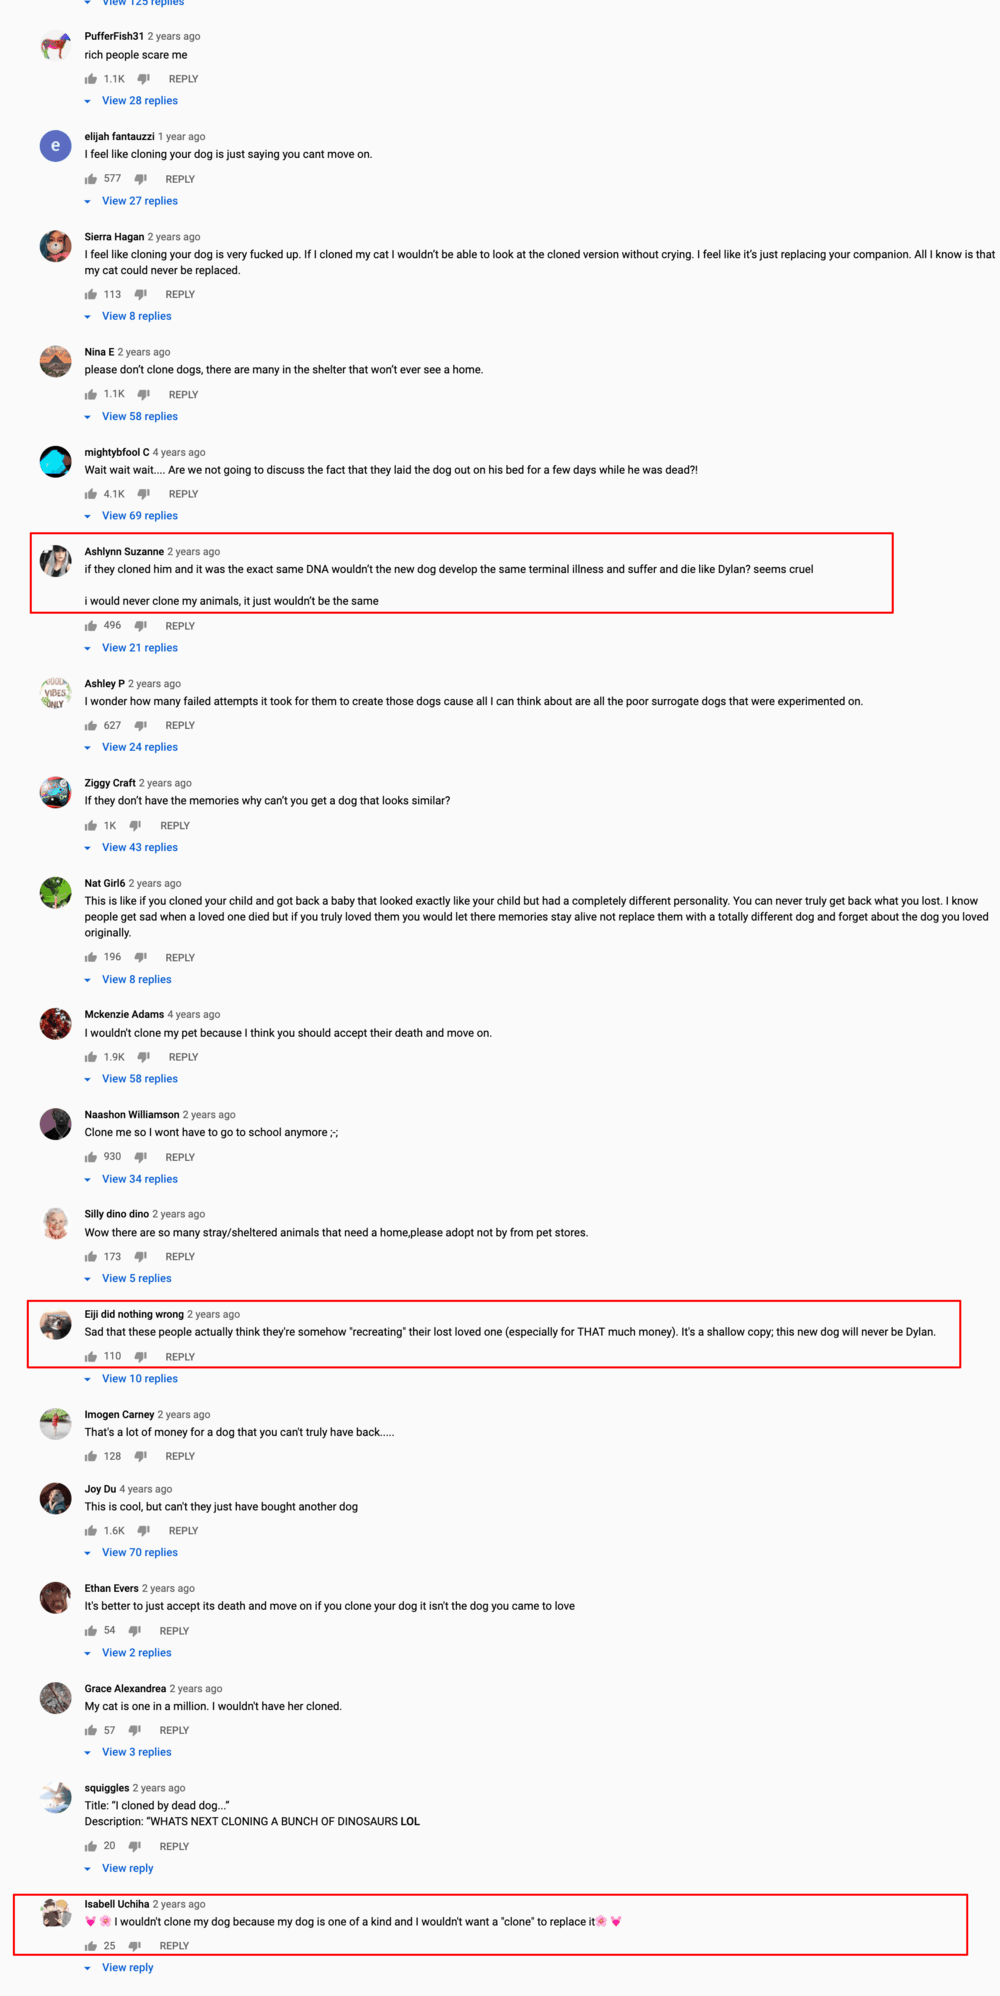 comments that people posted after a buzzfeed YouTube video about Dylan, the cloned boxer breed dog